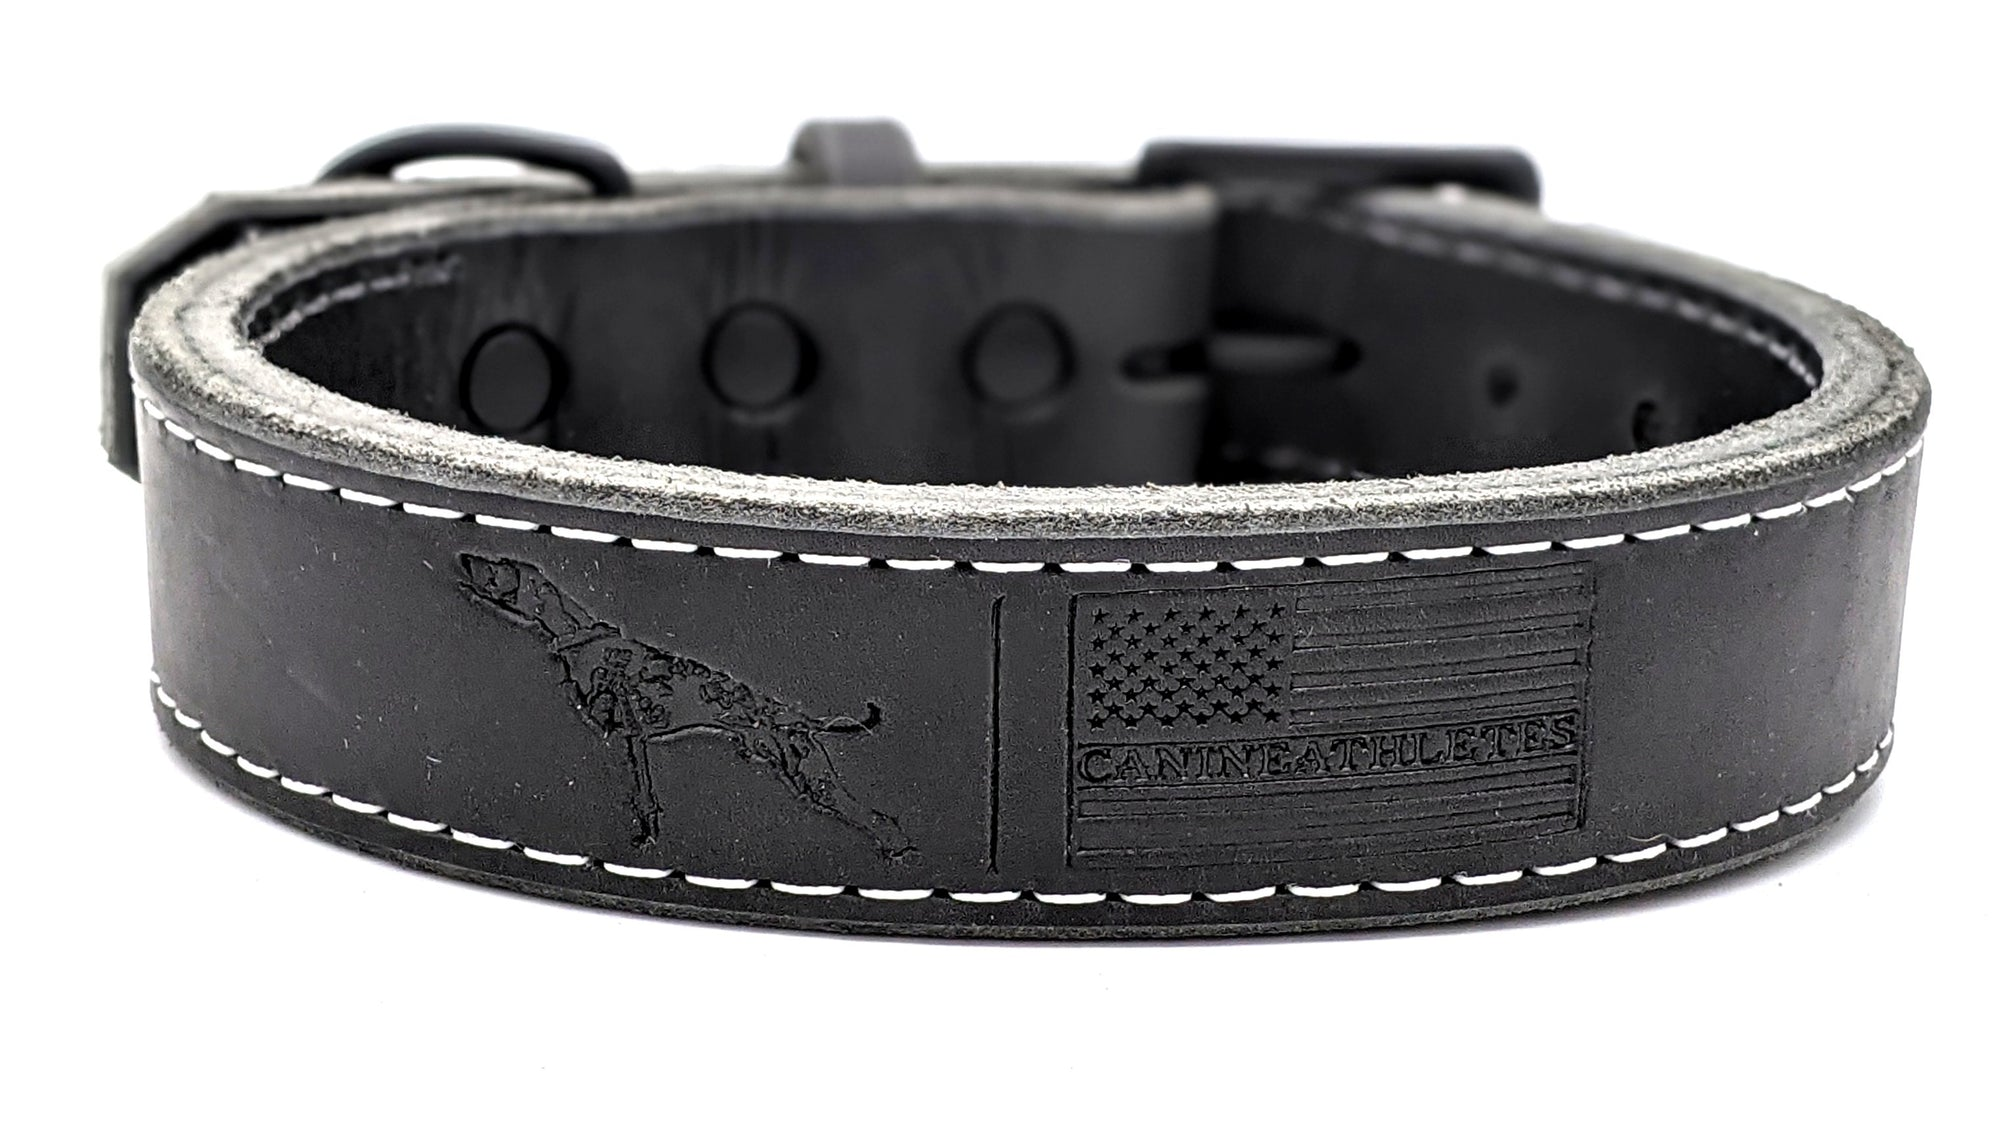 Canine Athletes x TGR Leather Collar